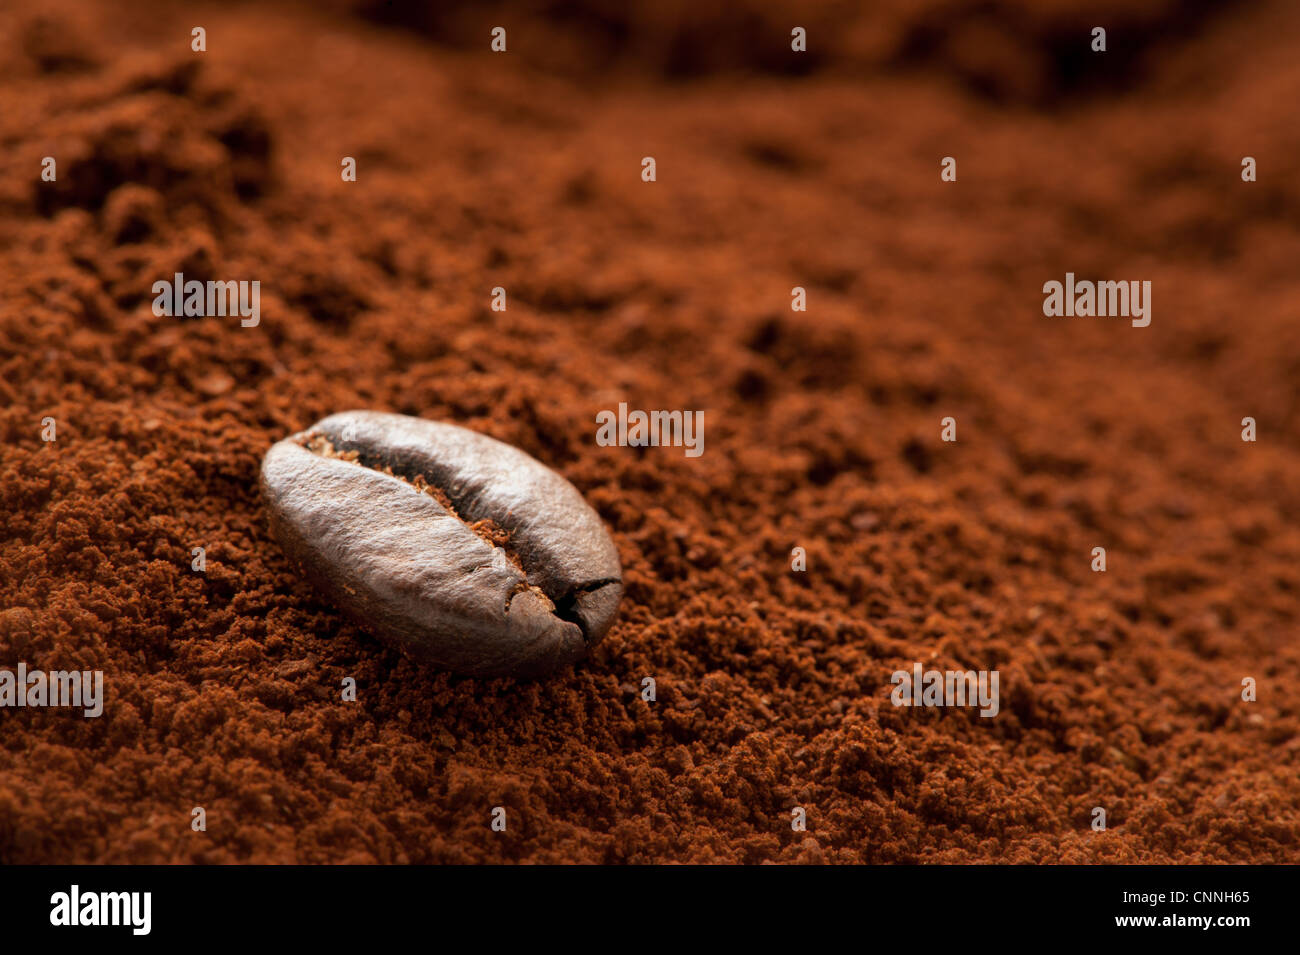 A solitary coffee bean on a mound of fresh coffee grounds - Stock Image